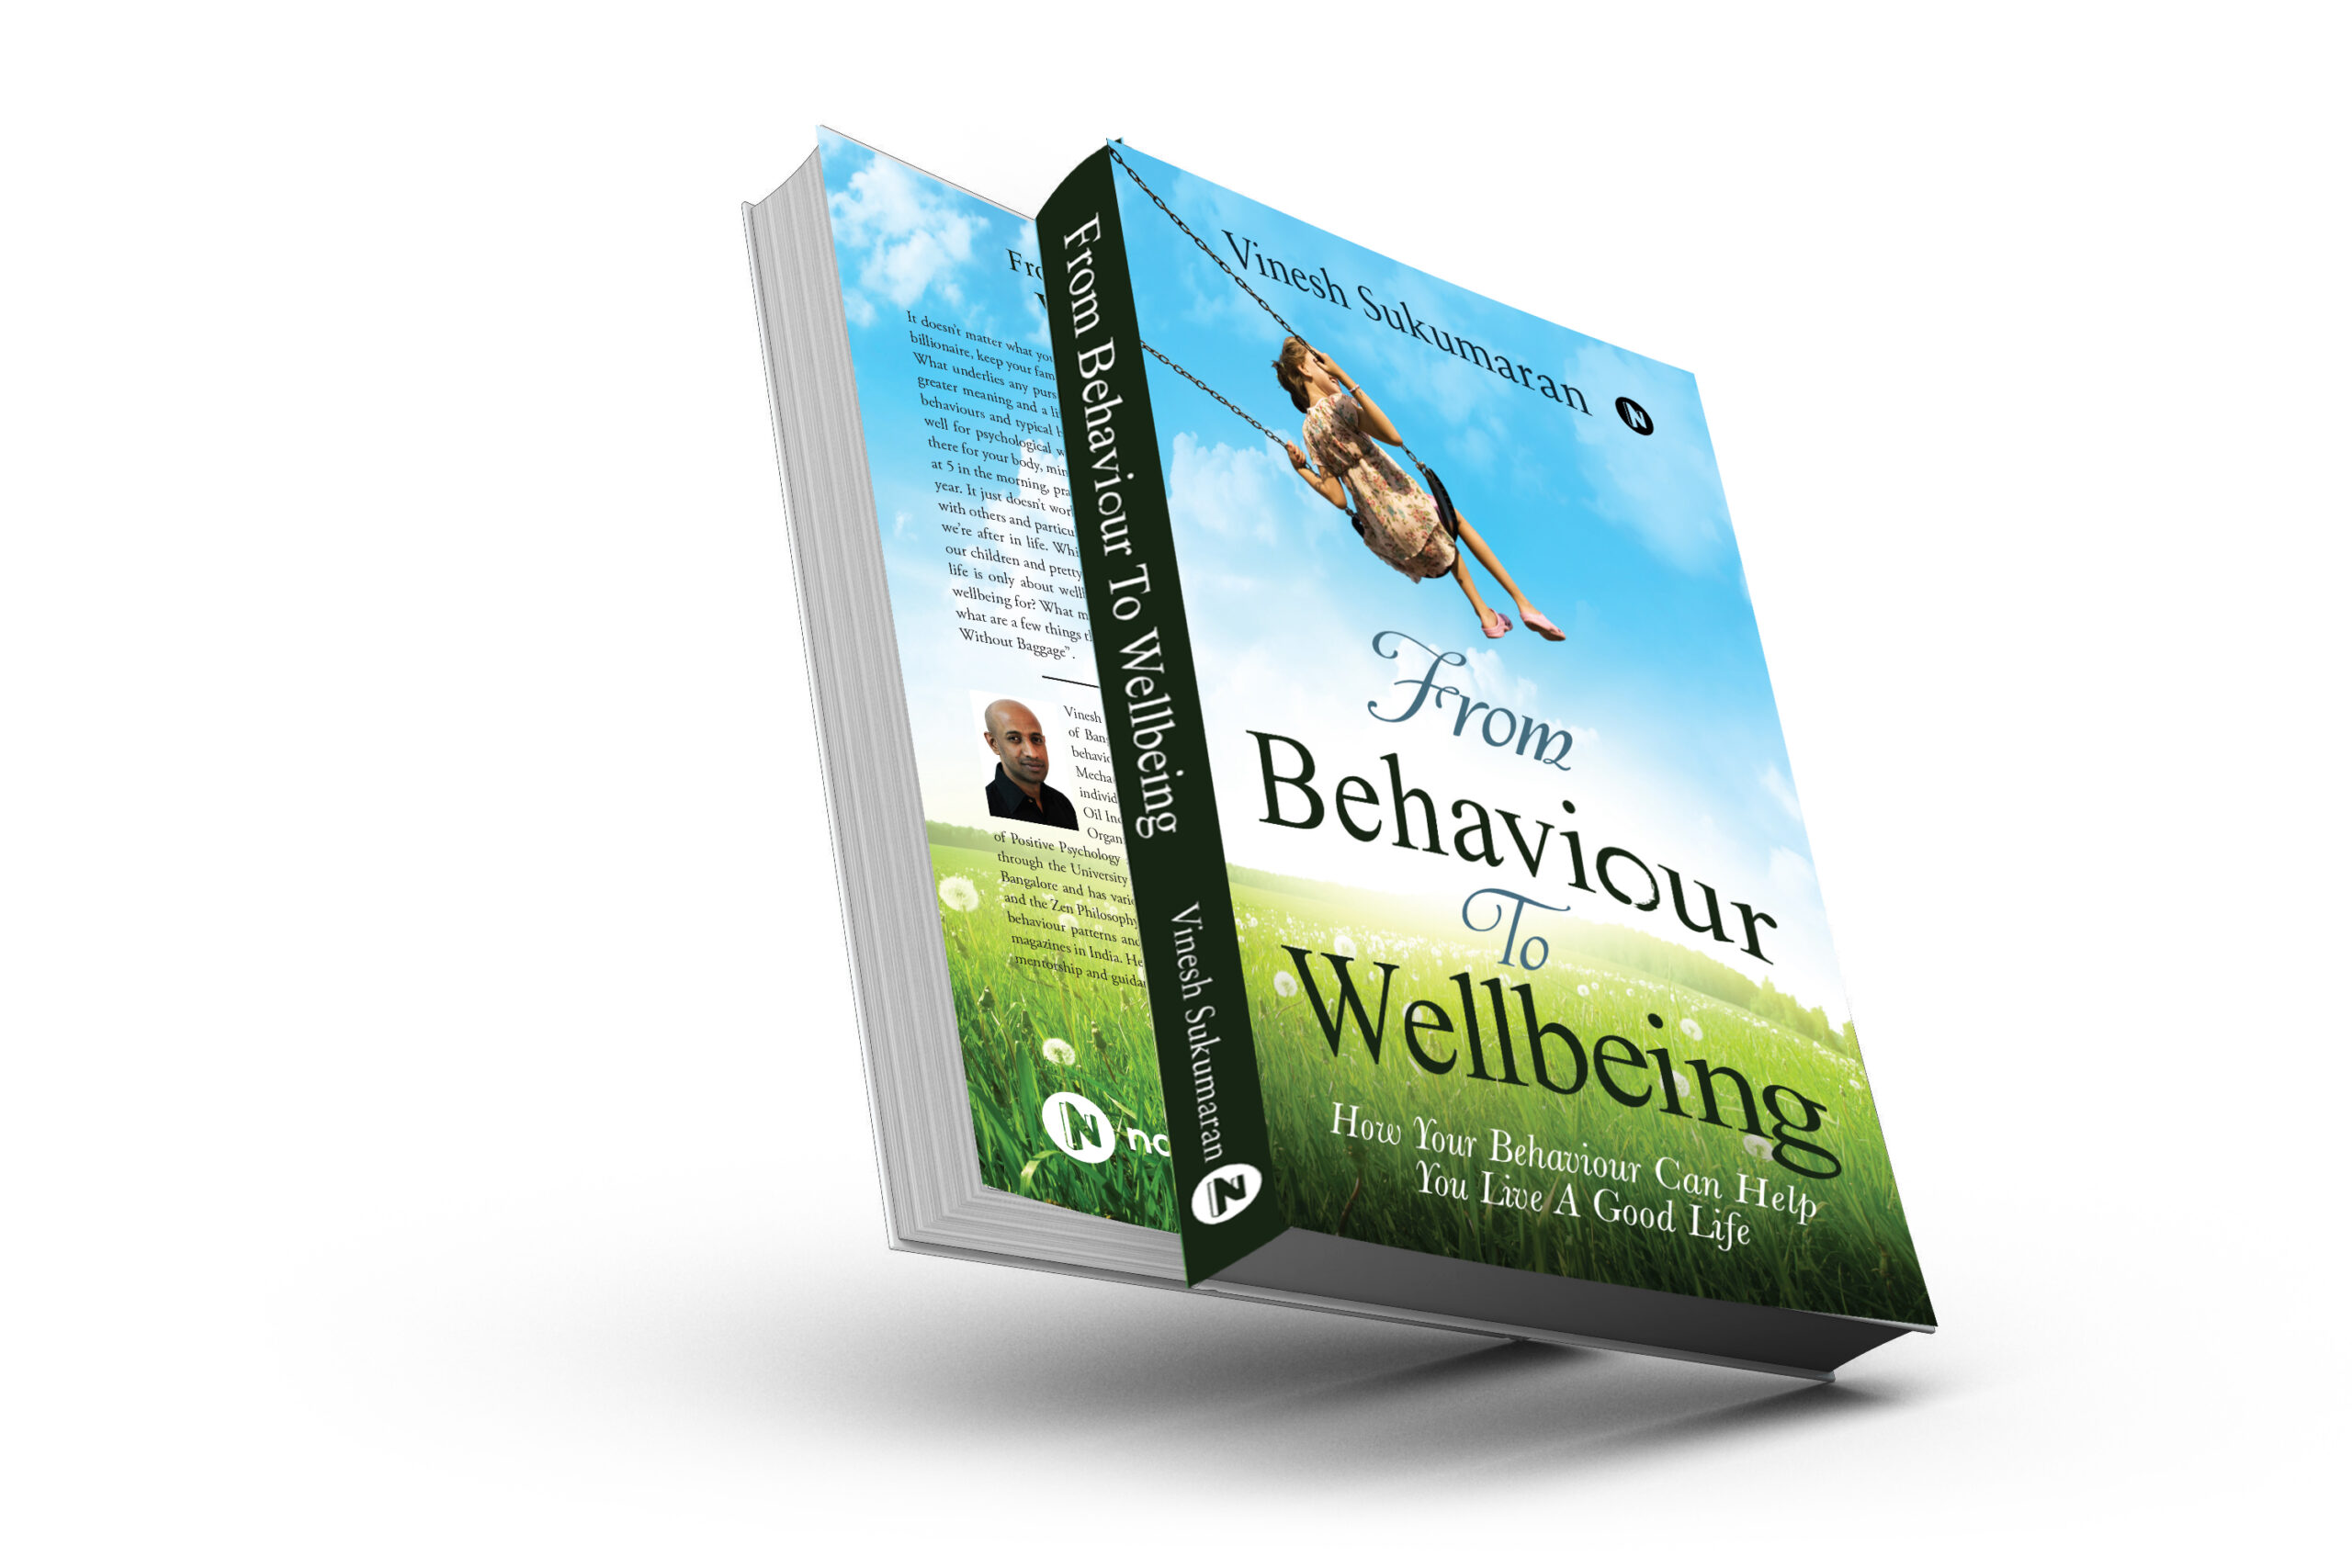 From Behaviour To Wellbeing